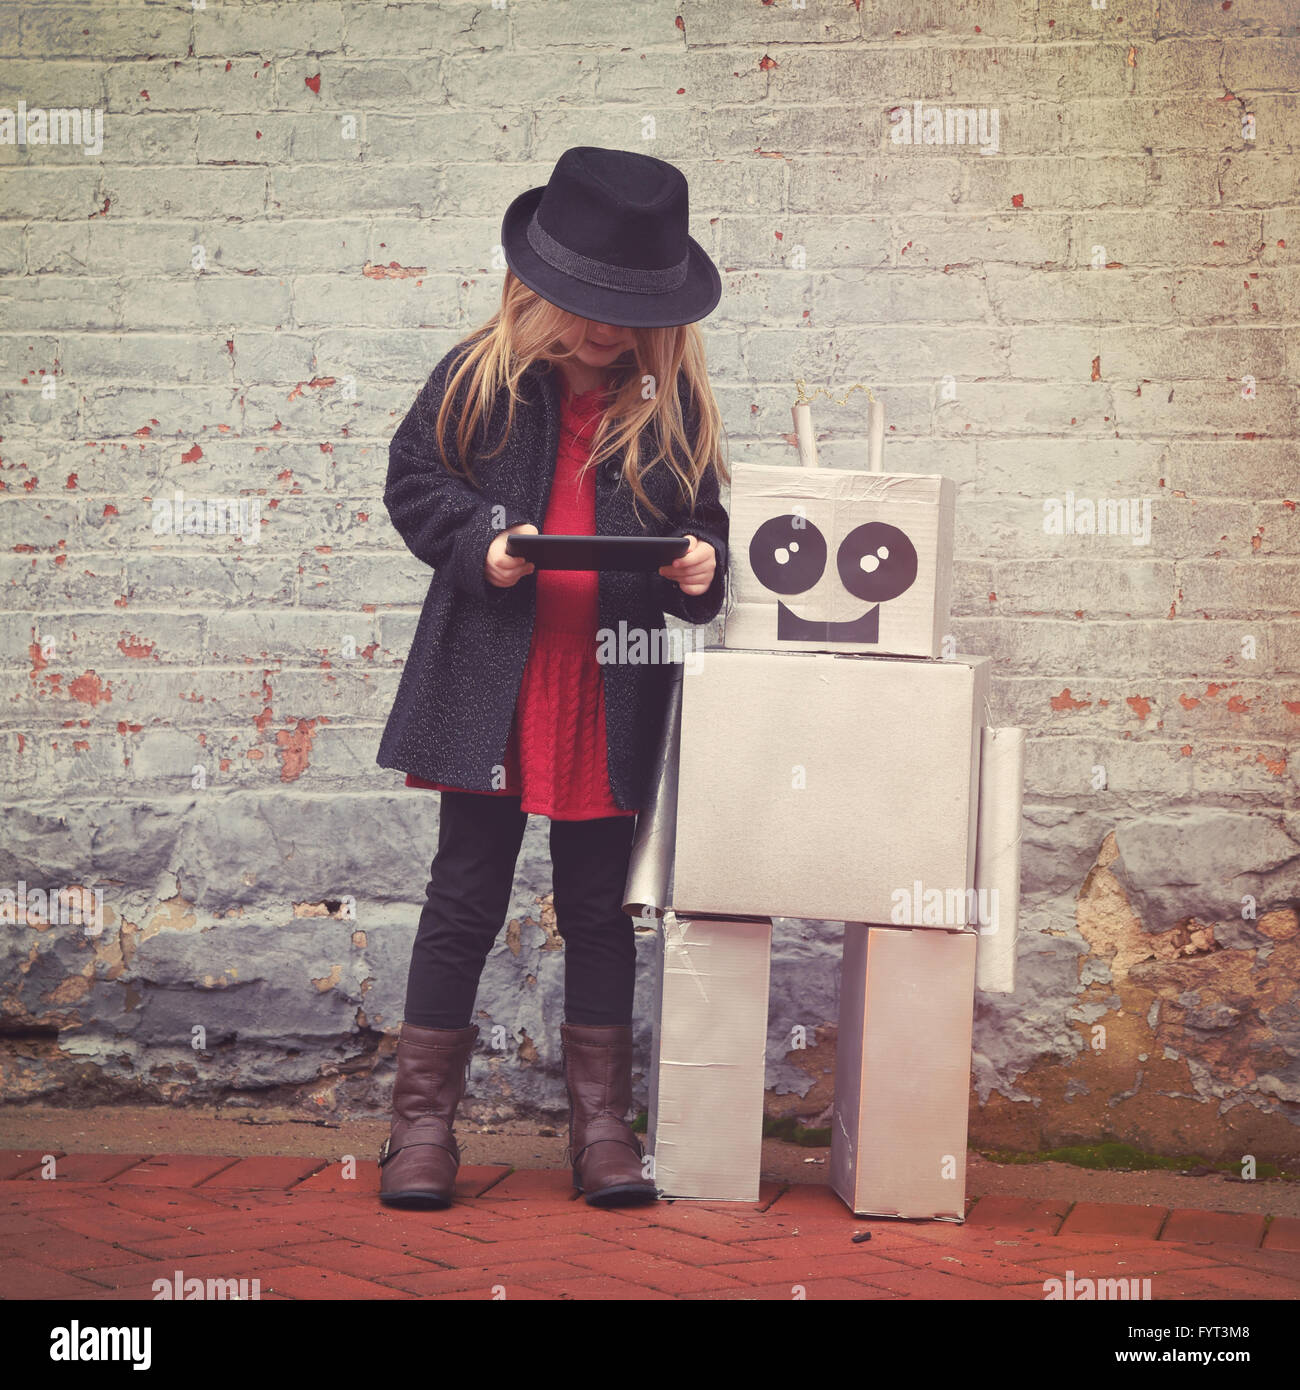 A little hipster child wearing is holding a tablet with her toy robot friend downtown for a happiness or technology - Stock Image